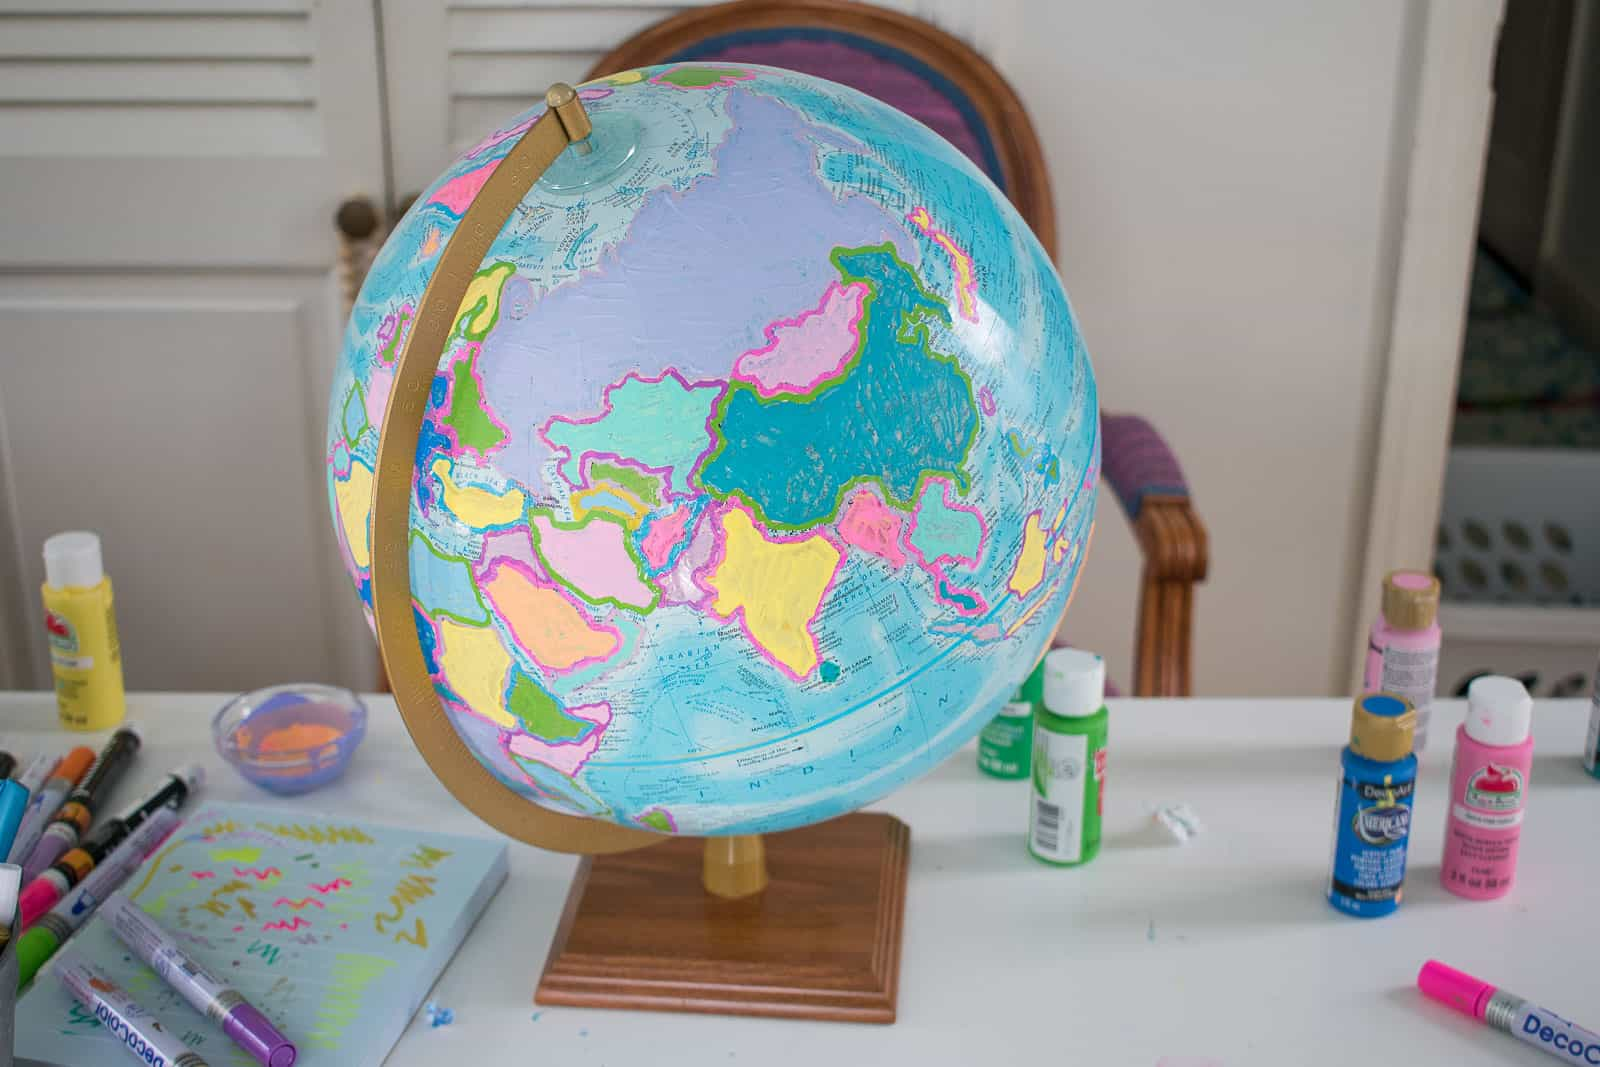 fill in all the shapes on the globe